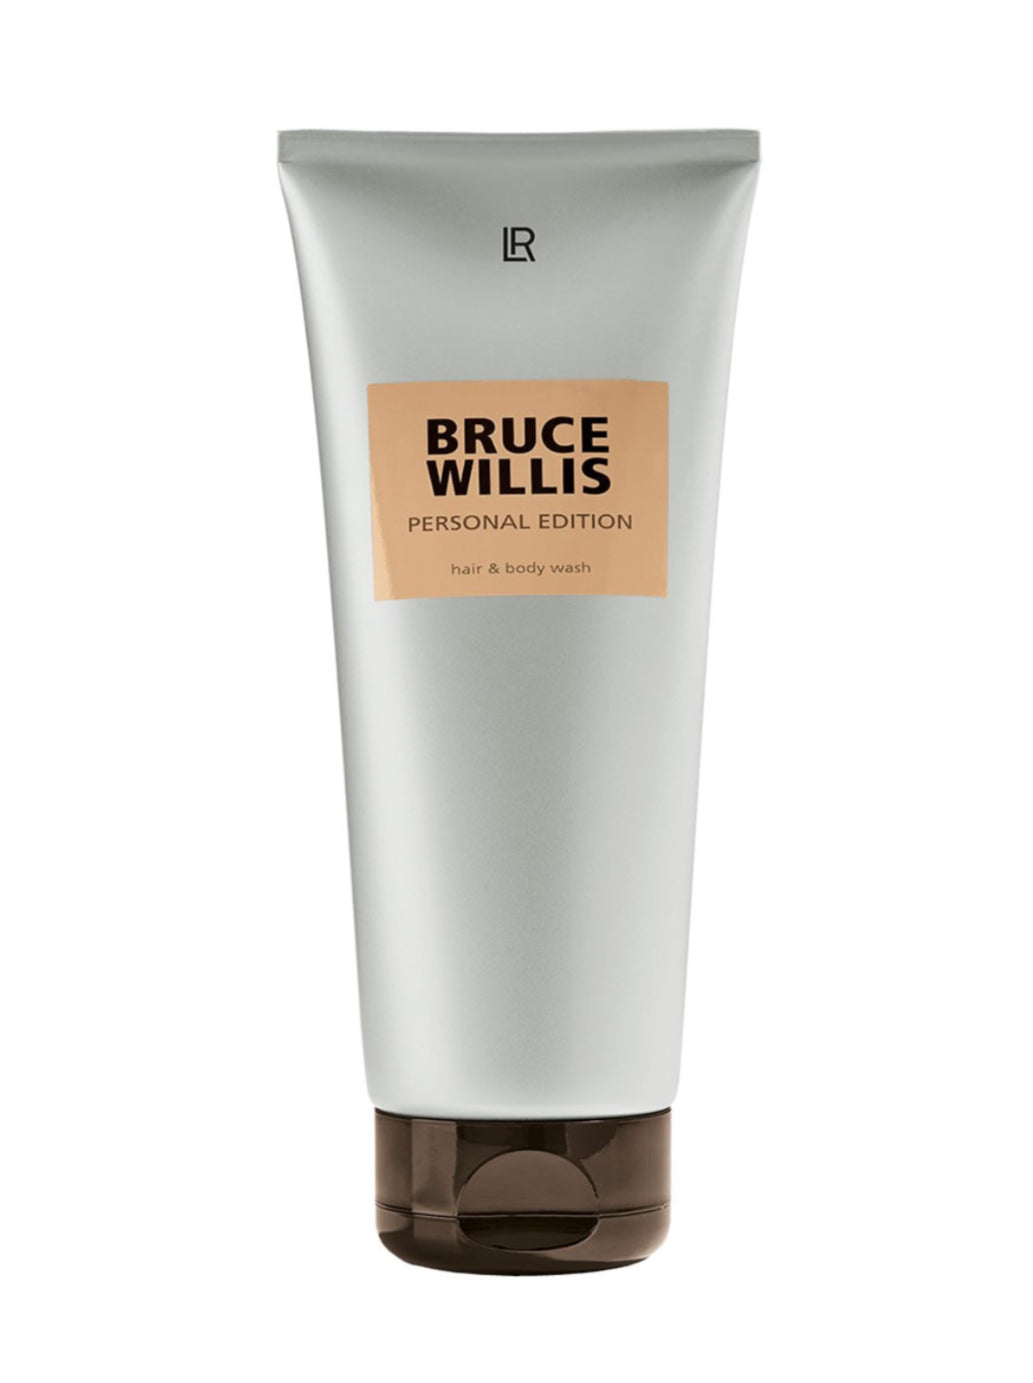 Bruce Willis Personal Edition Hair & Body Wash 200ml